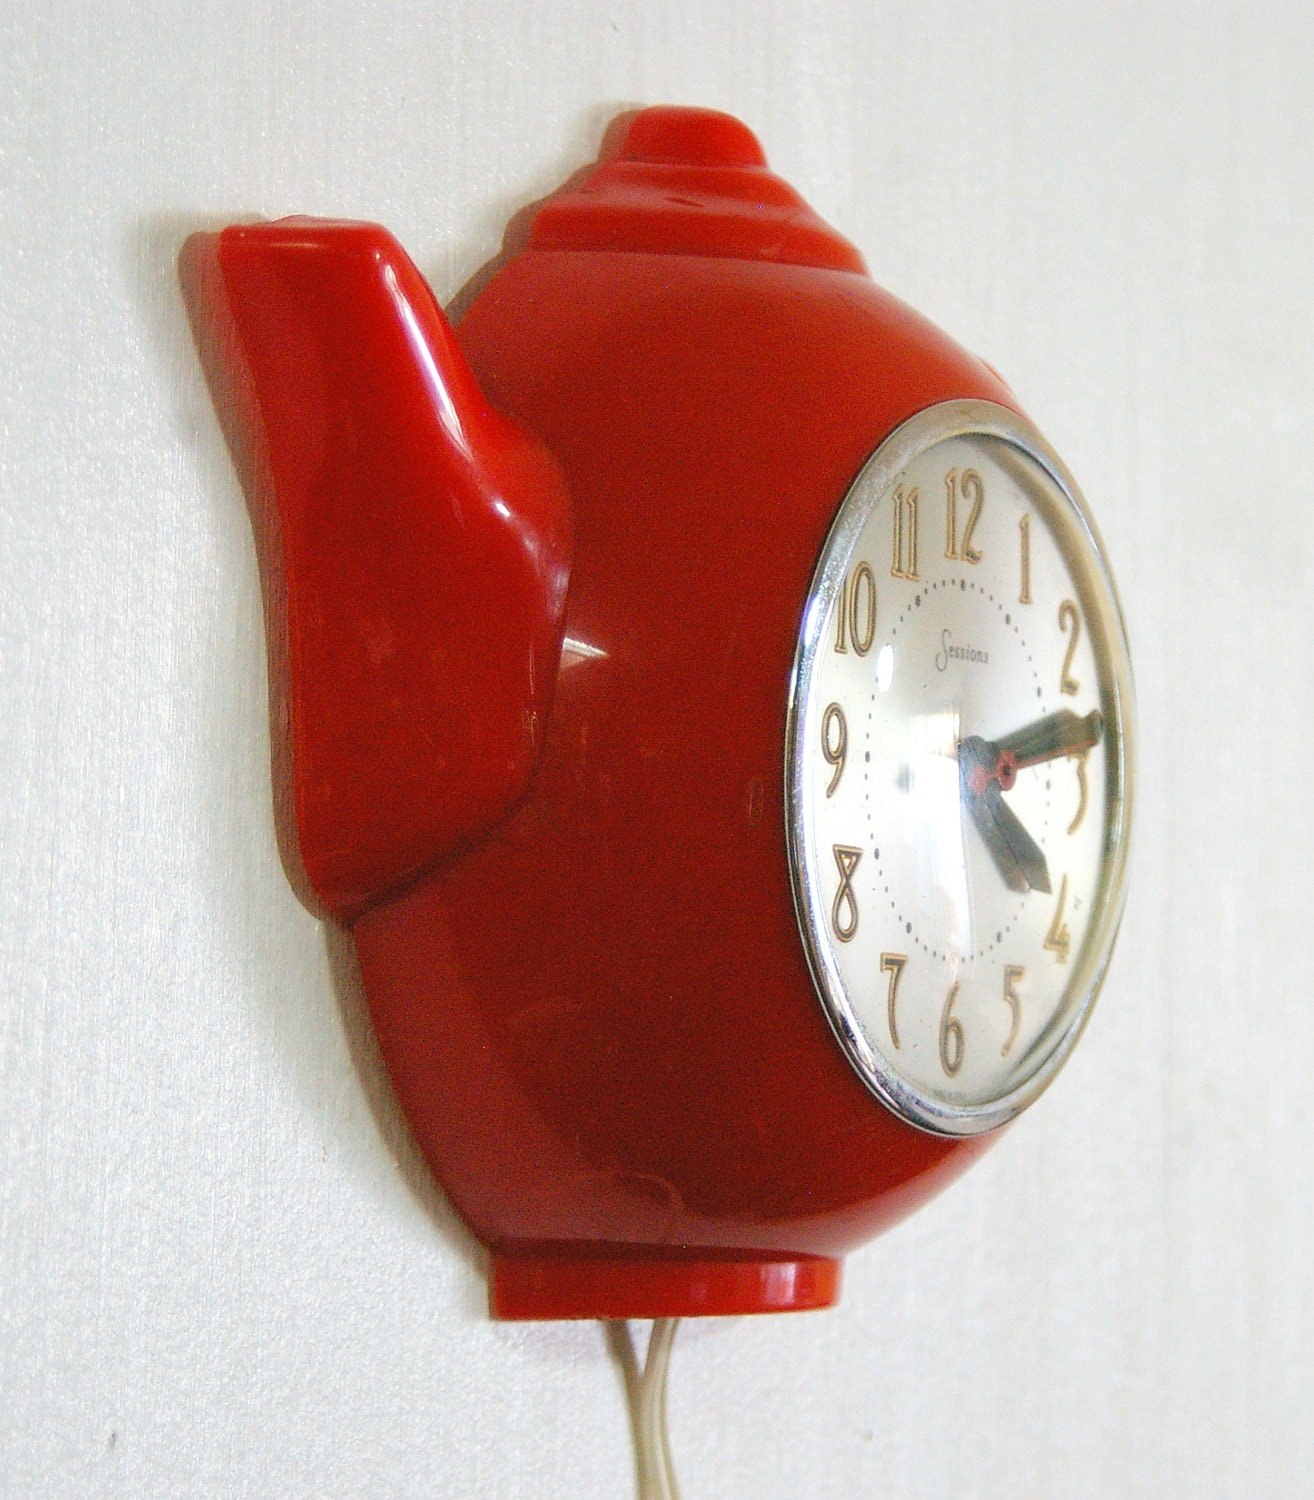 Vintage Sessions Clock Company Red Teapot Wall Clock